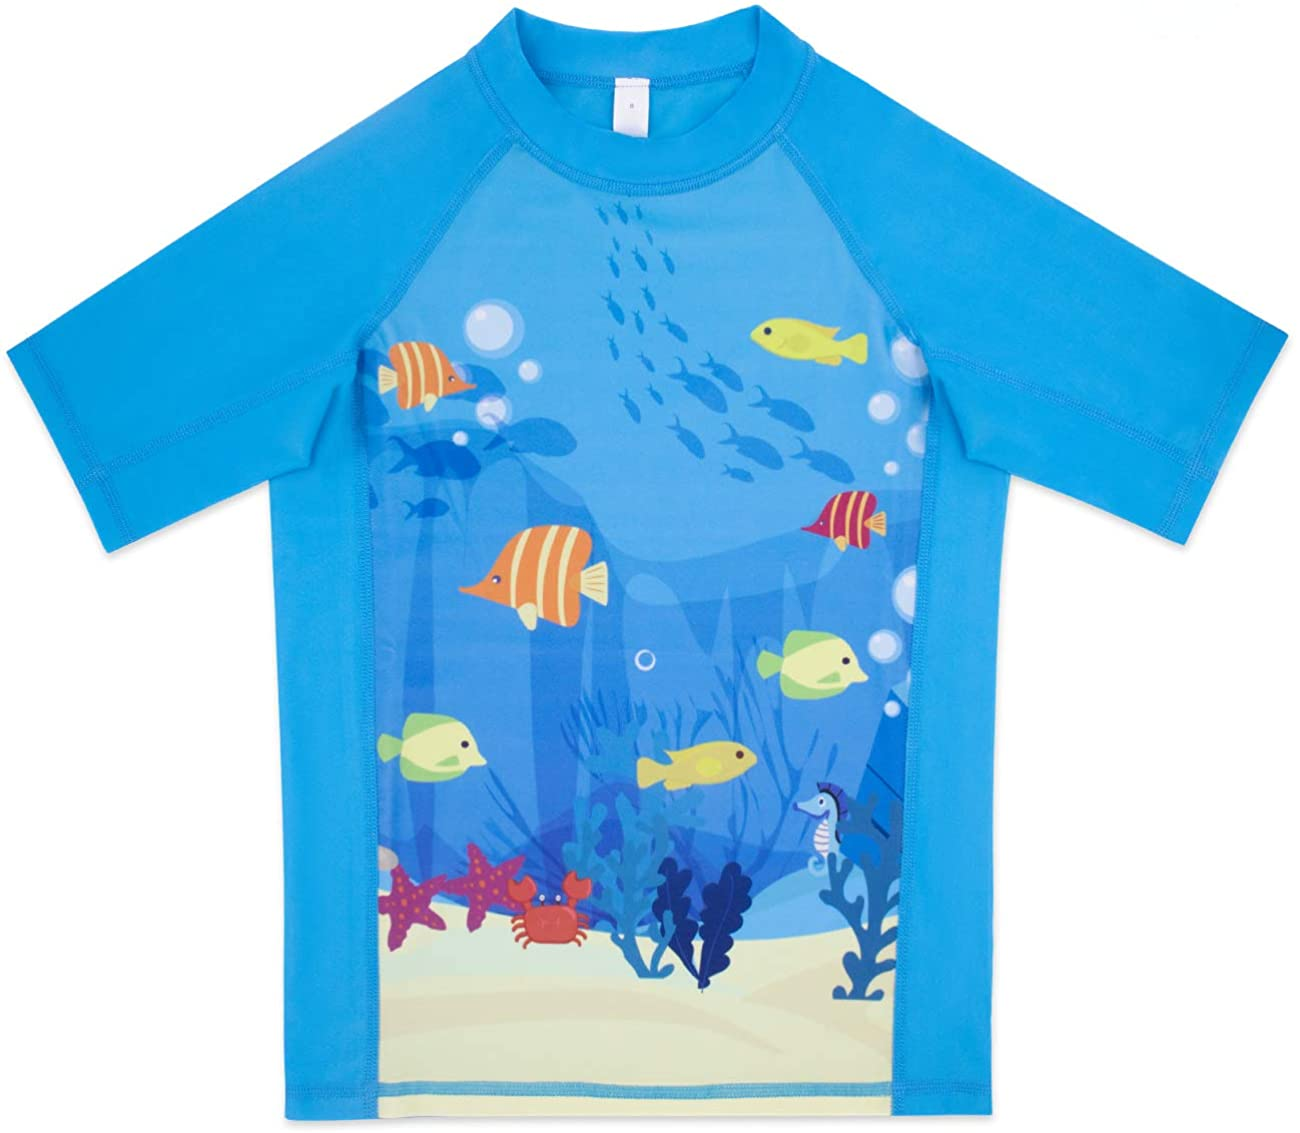 OMGear Kids Rash Guard Short Sleeves Swimsuit Sun Protection Shirt for Swimming Snorkeling